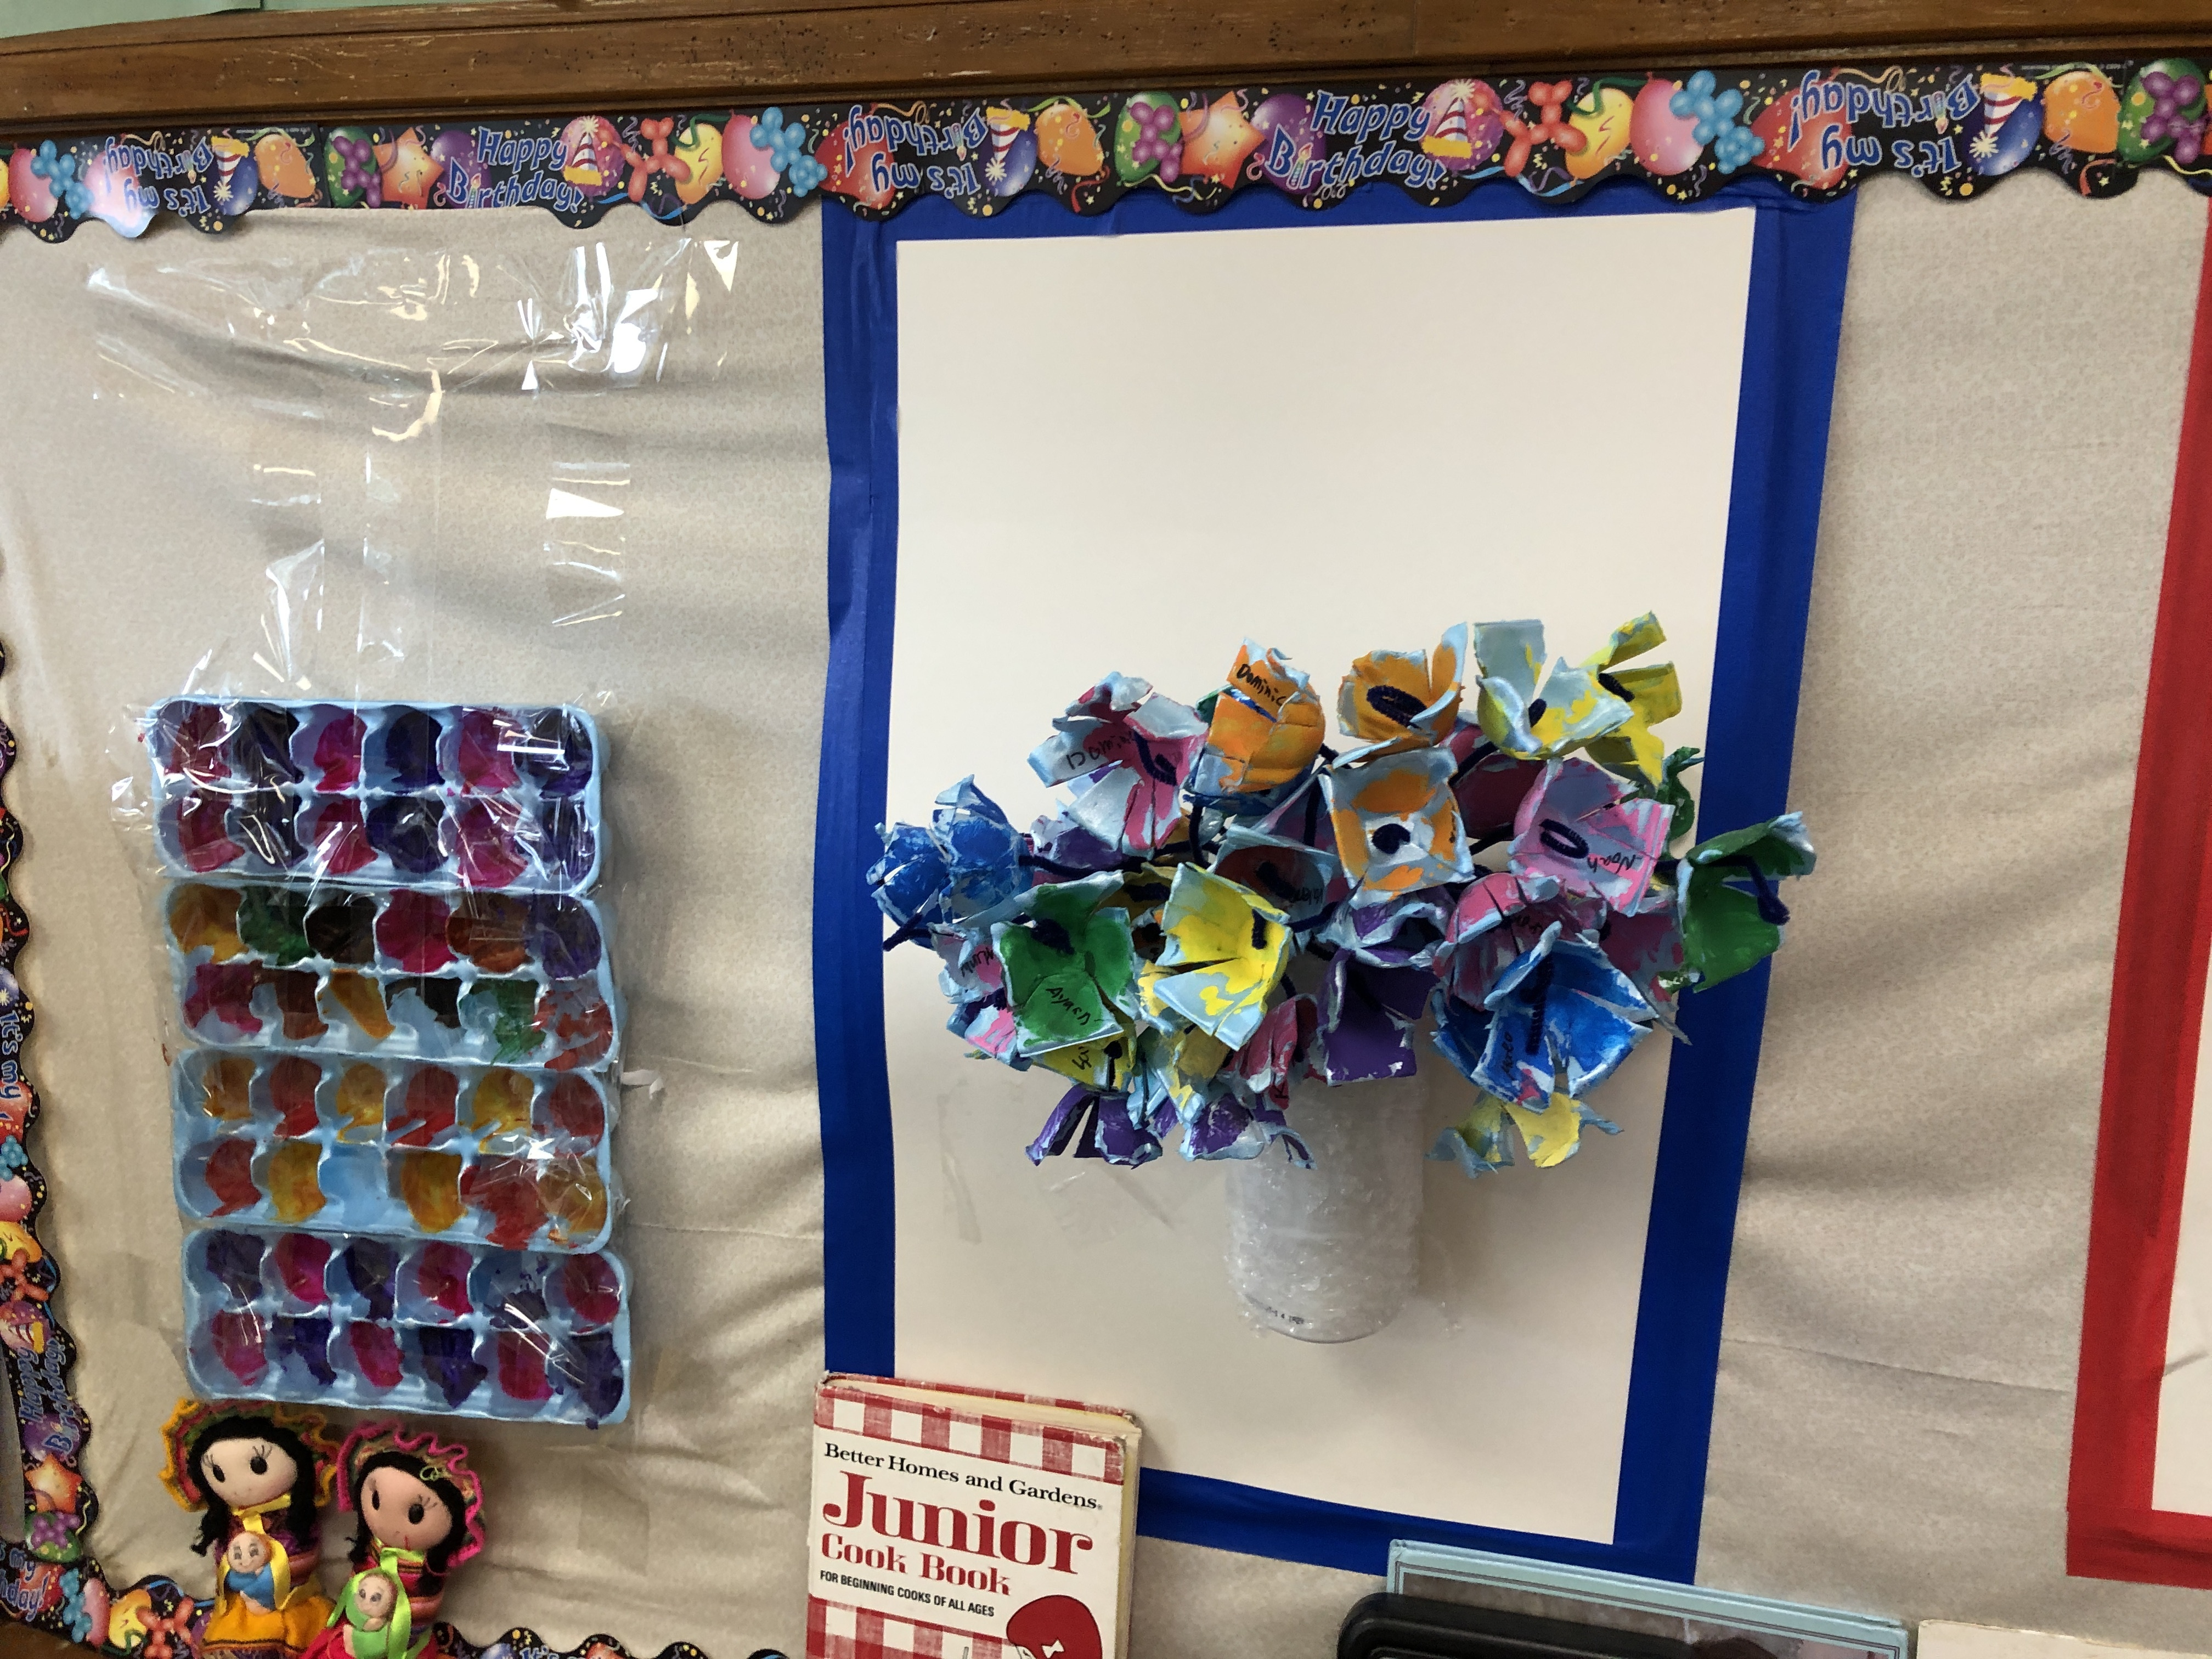 Child care classroom decor made of recycled egg cartons